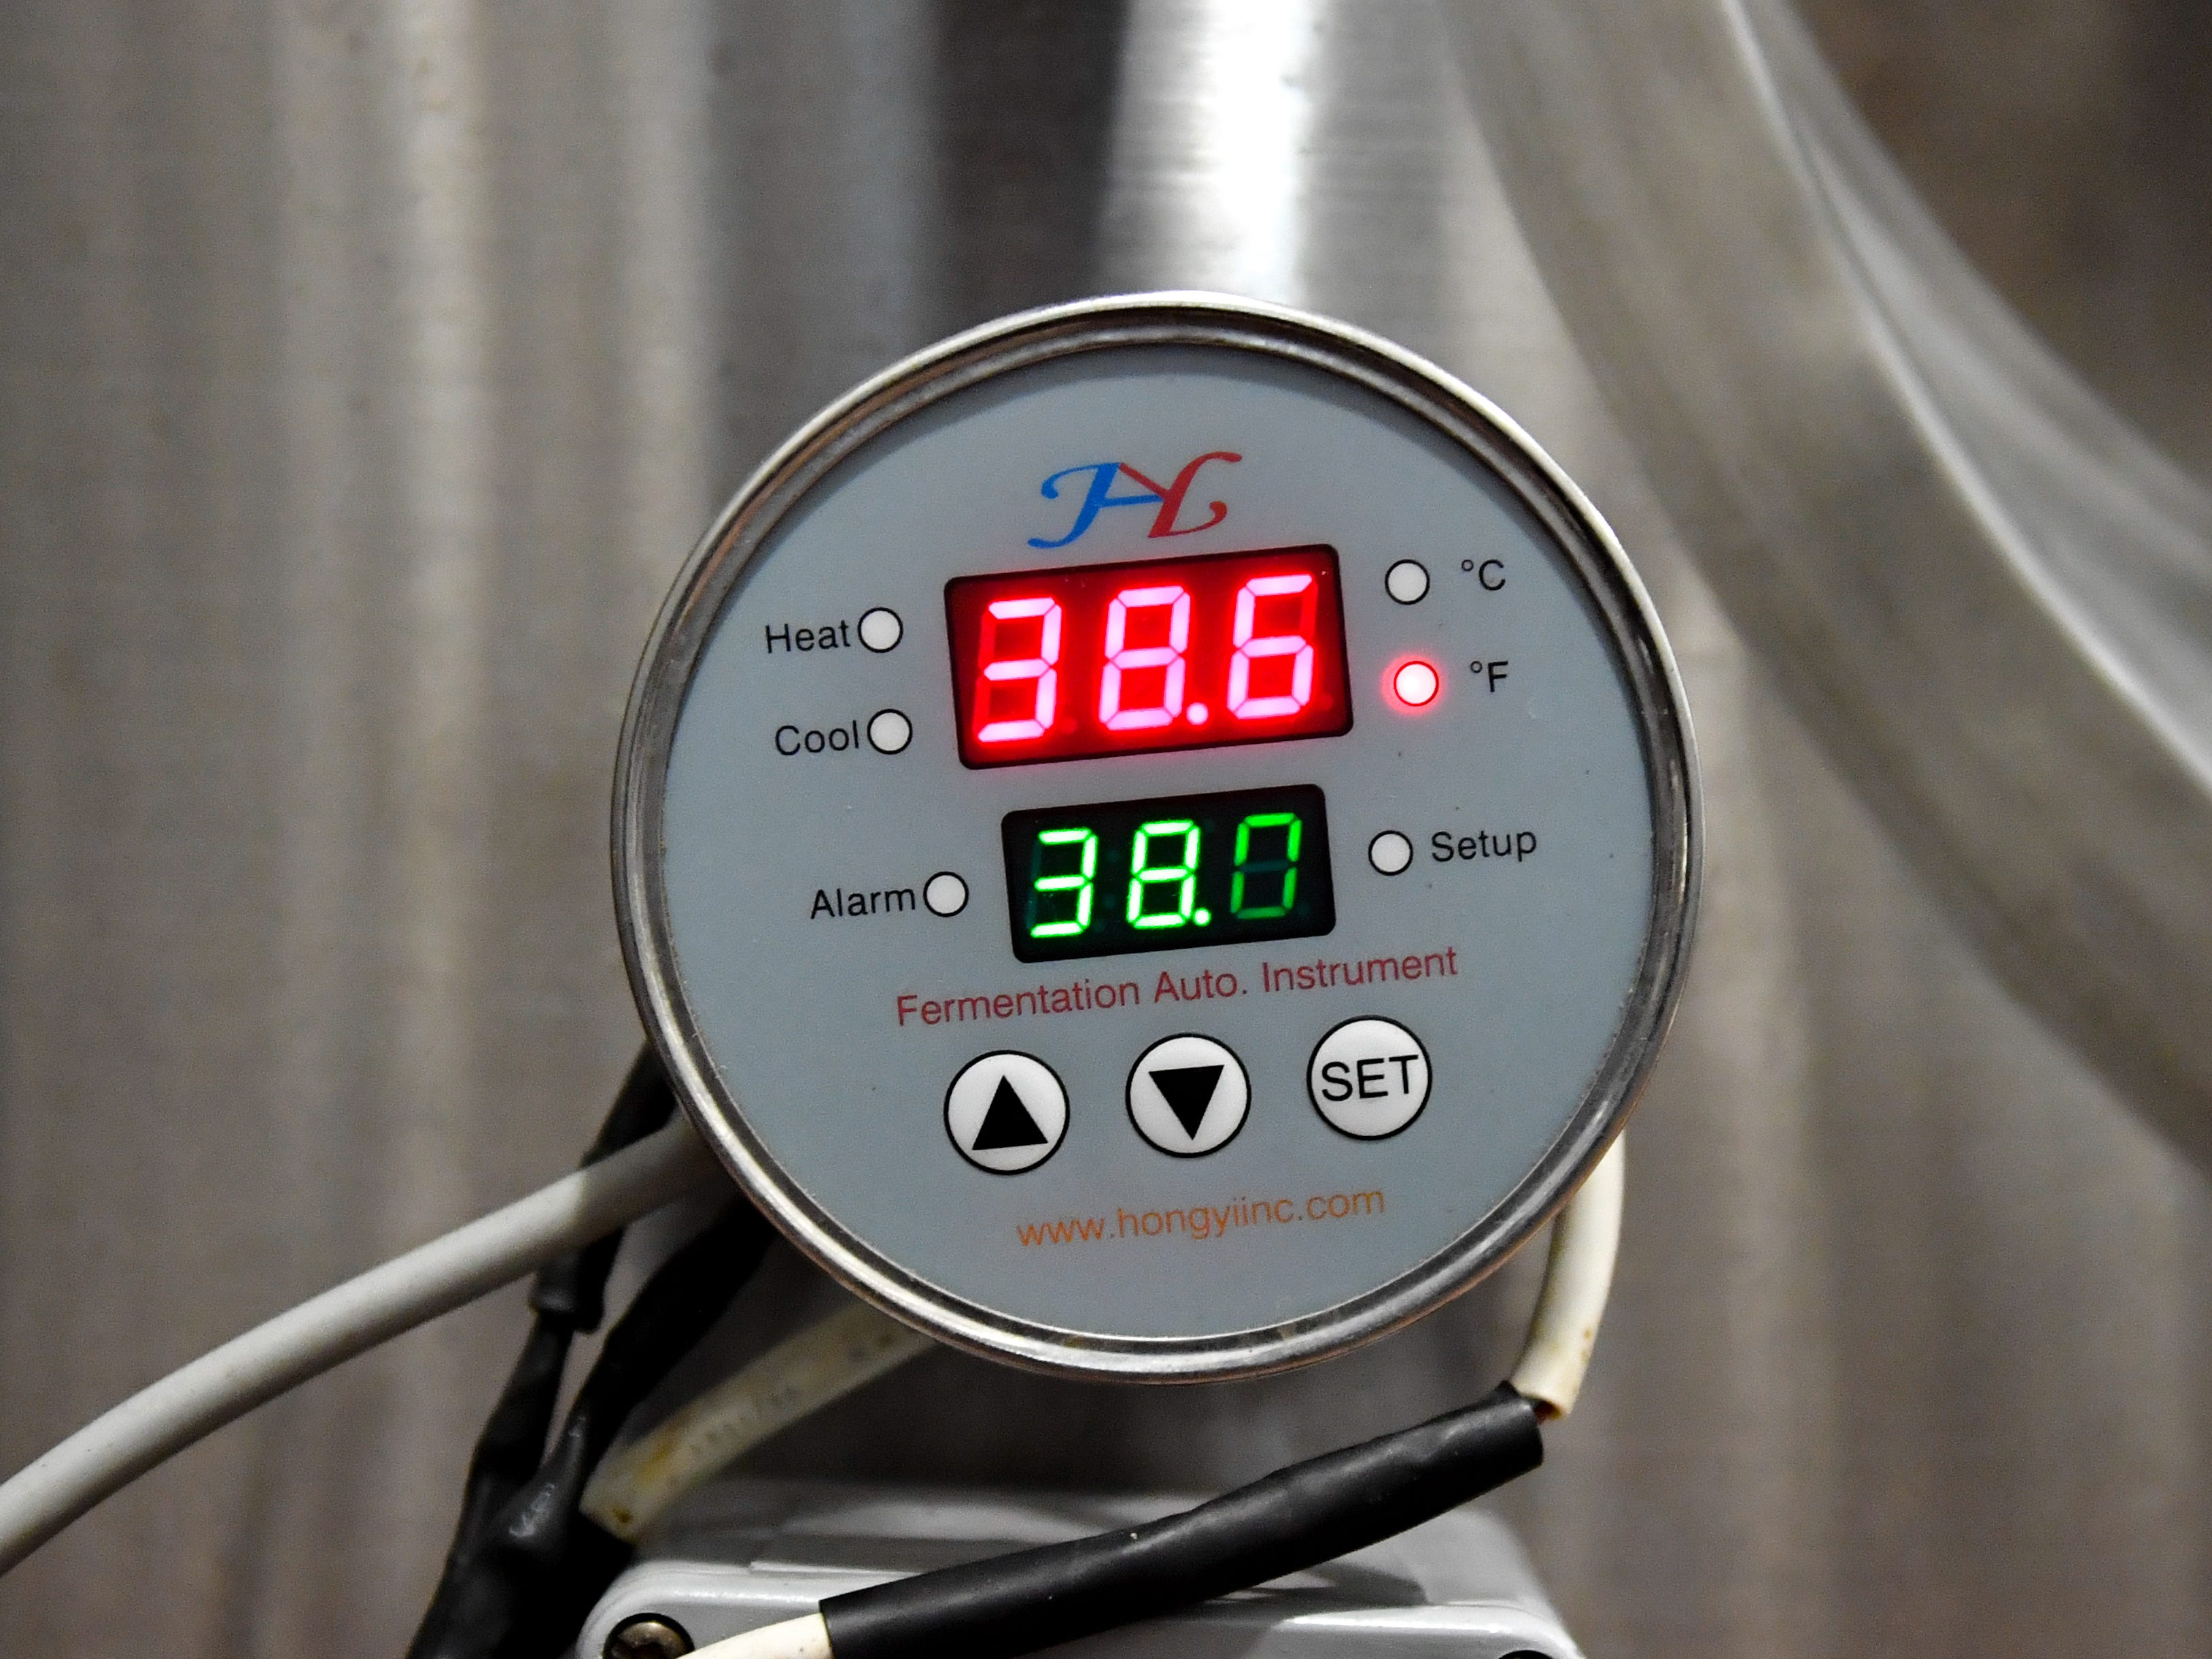 Each tank is temperature controlled so the beer inside can be made to perfection at the Mexitaly Brick oven Brewhouse, October 19, 2018.